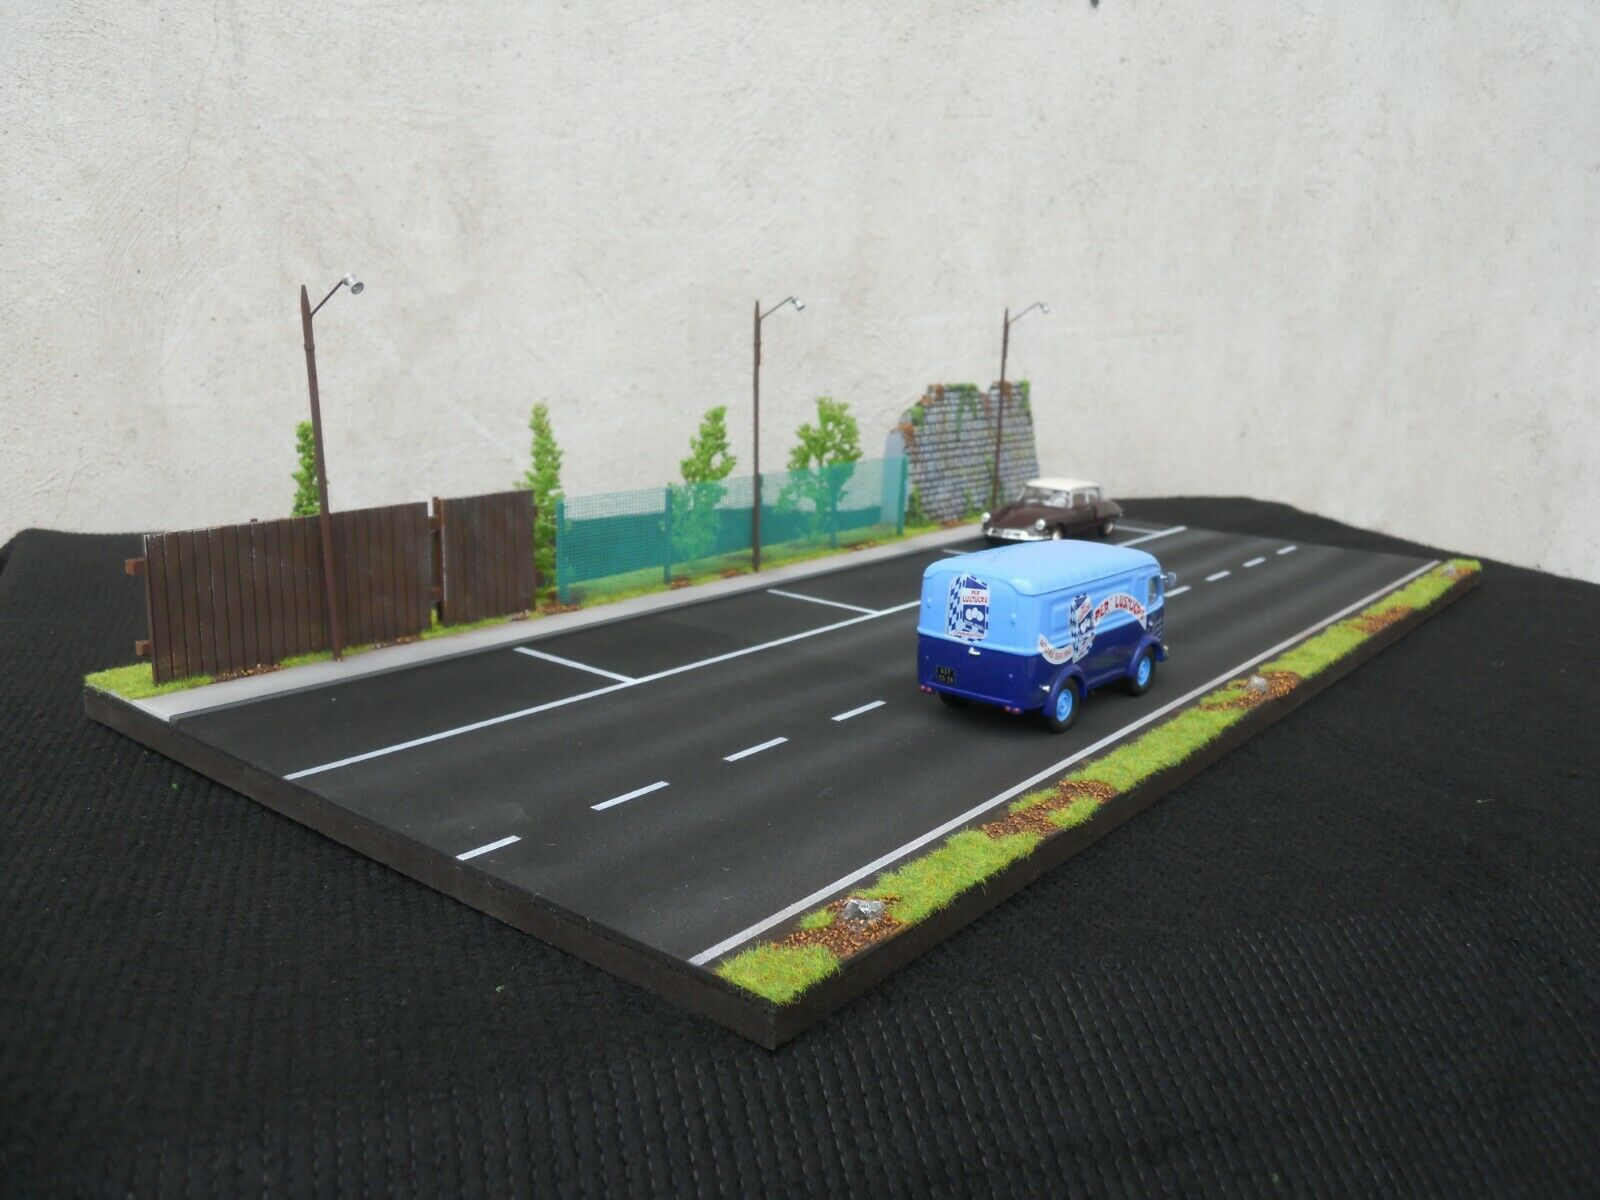 DIORAMA VEHICULES 1 1 1 43 ROUTE 2 VOIES  4 EMPLACEMENTS PARKING  L 59 cm X 29 cm ff3934